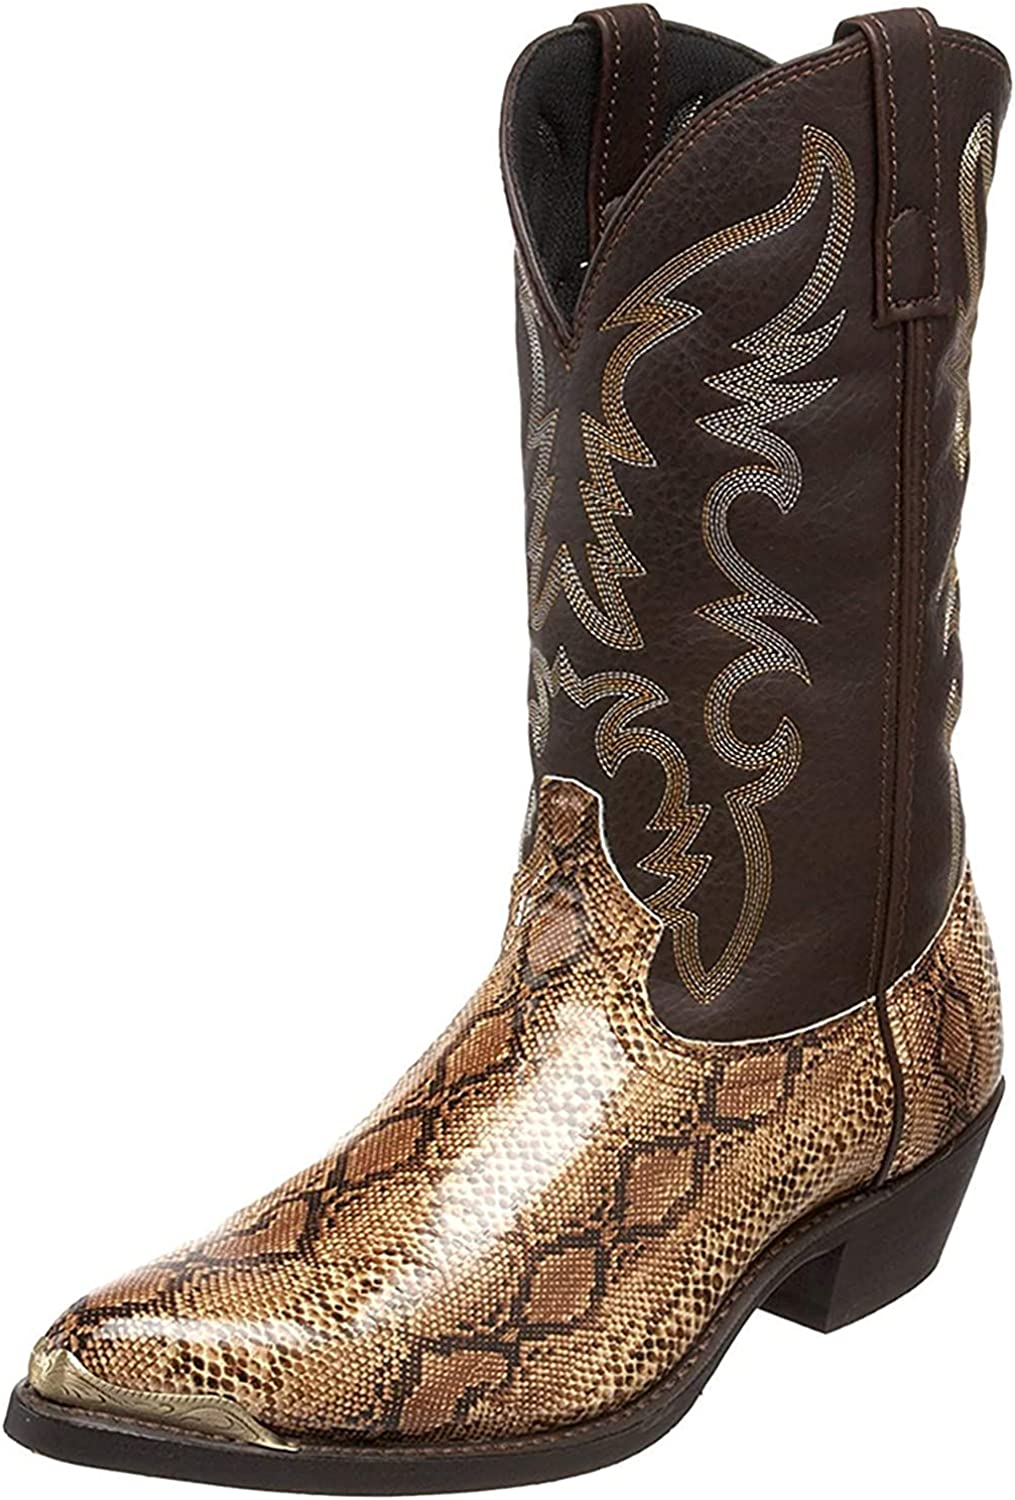 Women Tampa Mall Vintage Boots Embroidery High shop Toe Pointed Shoes Heels Spli